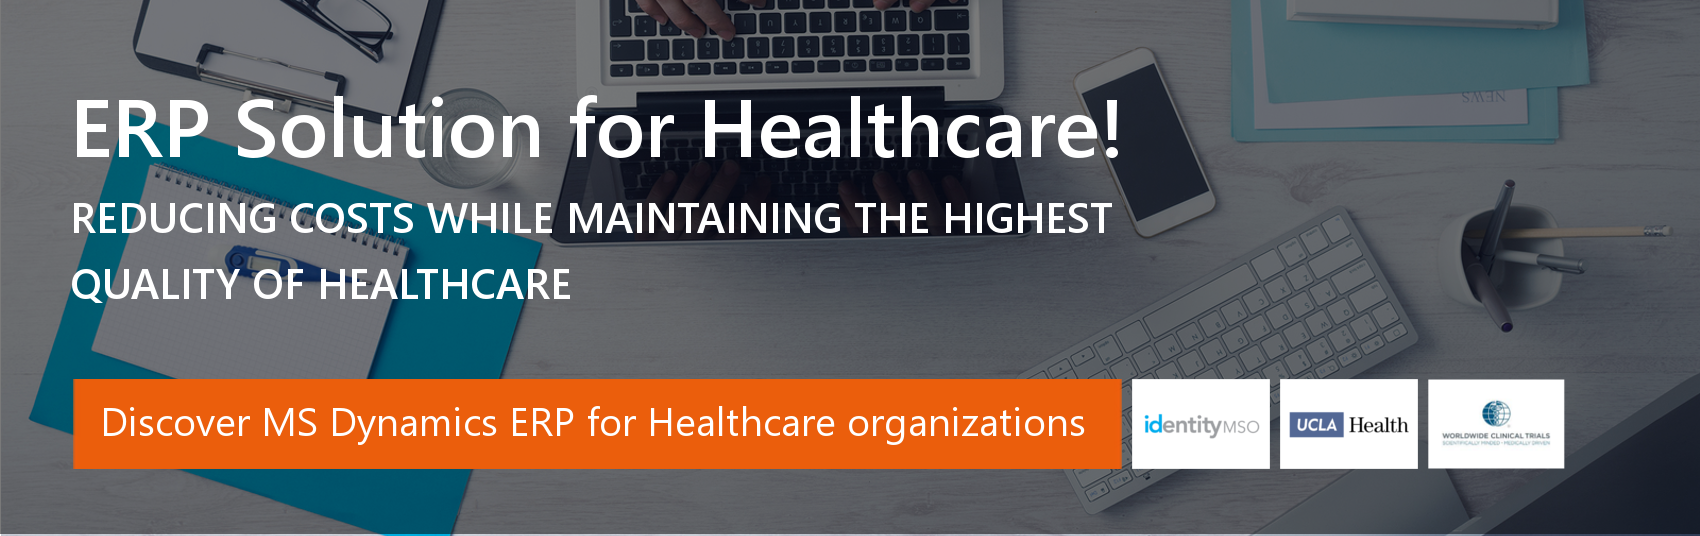 ERP for Healthcare Businesses